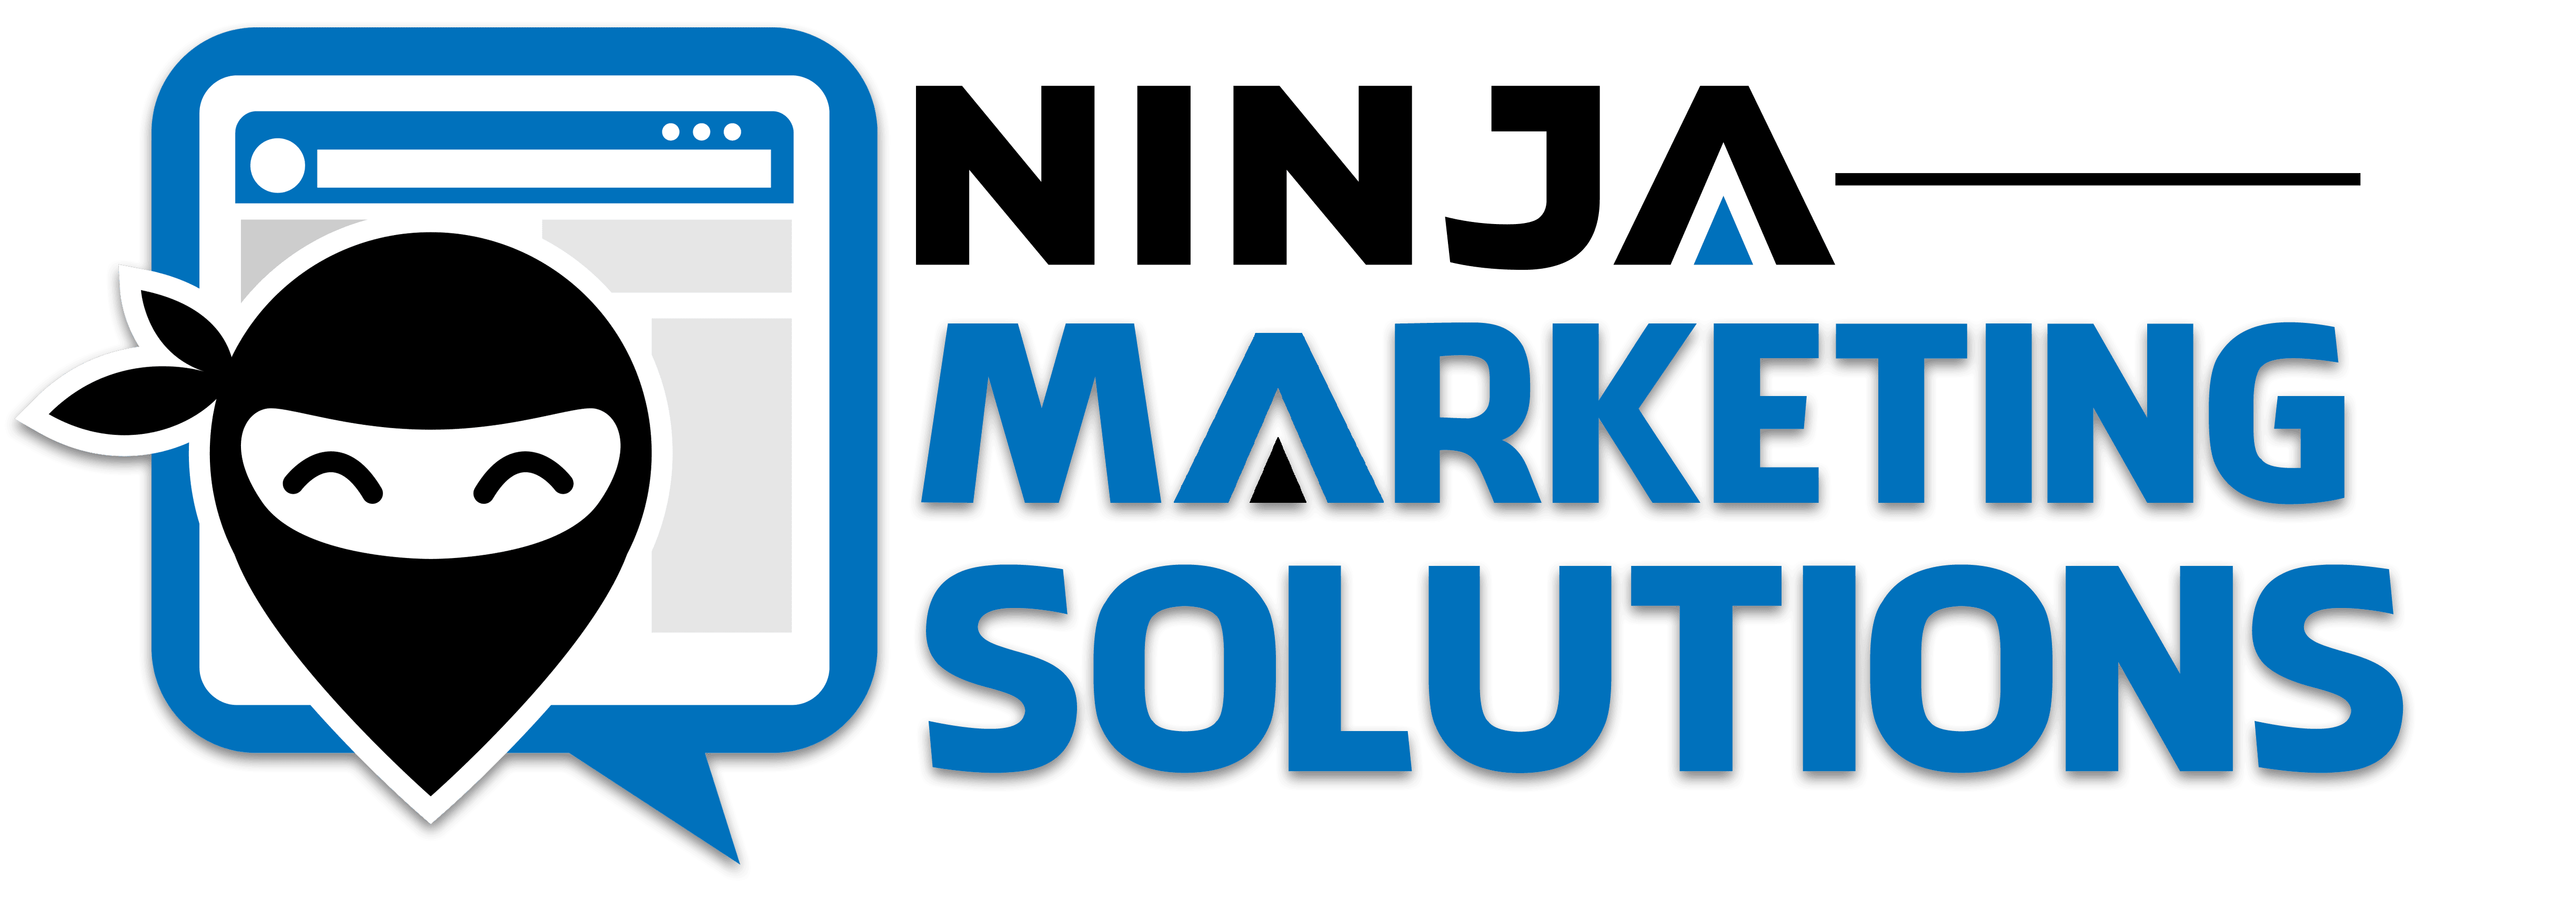 Ninja Marketing Solutions